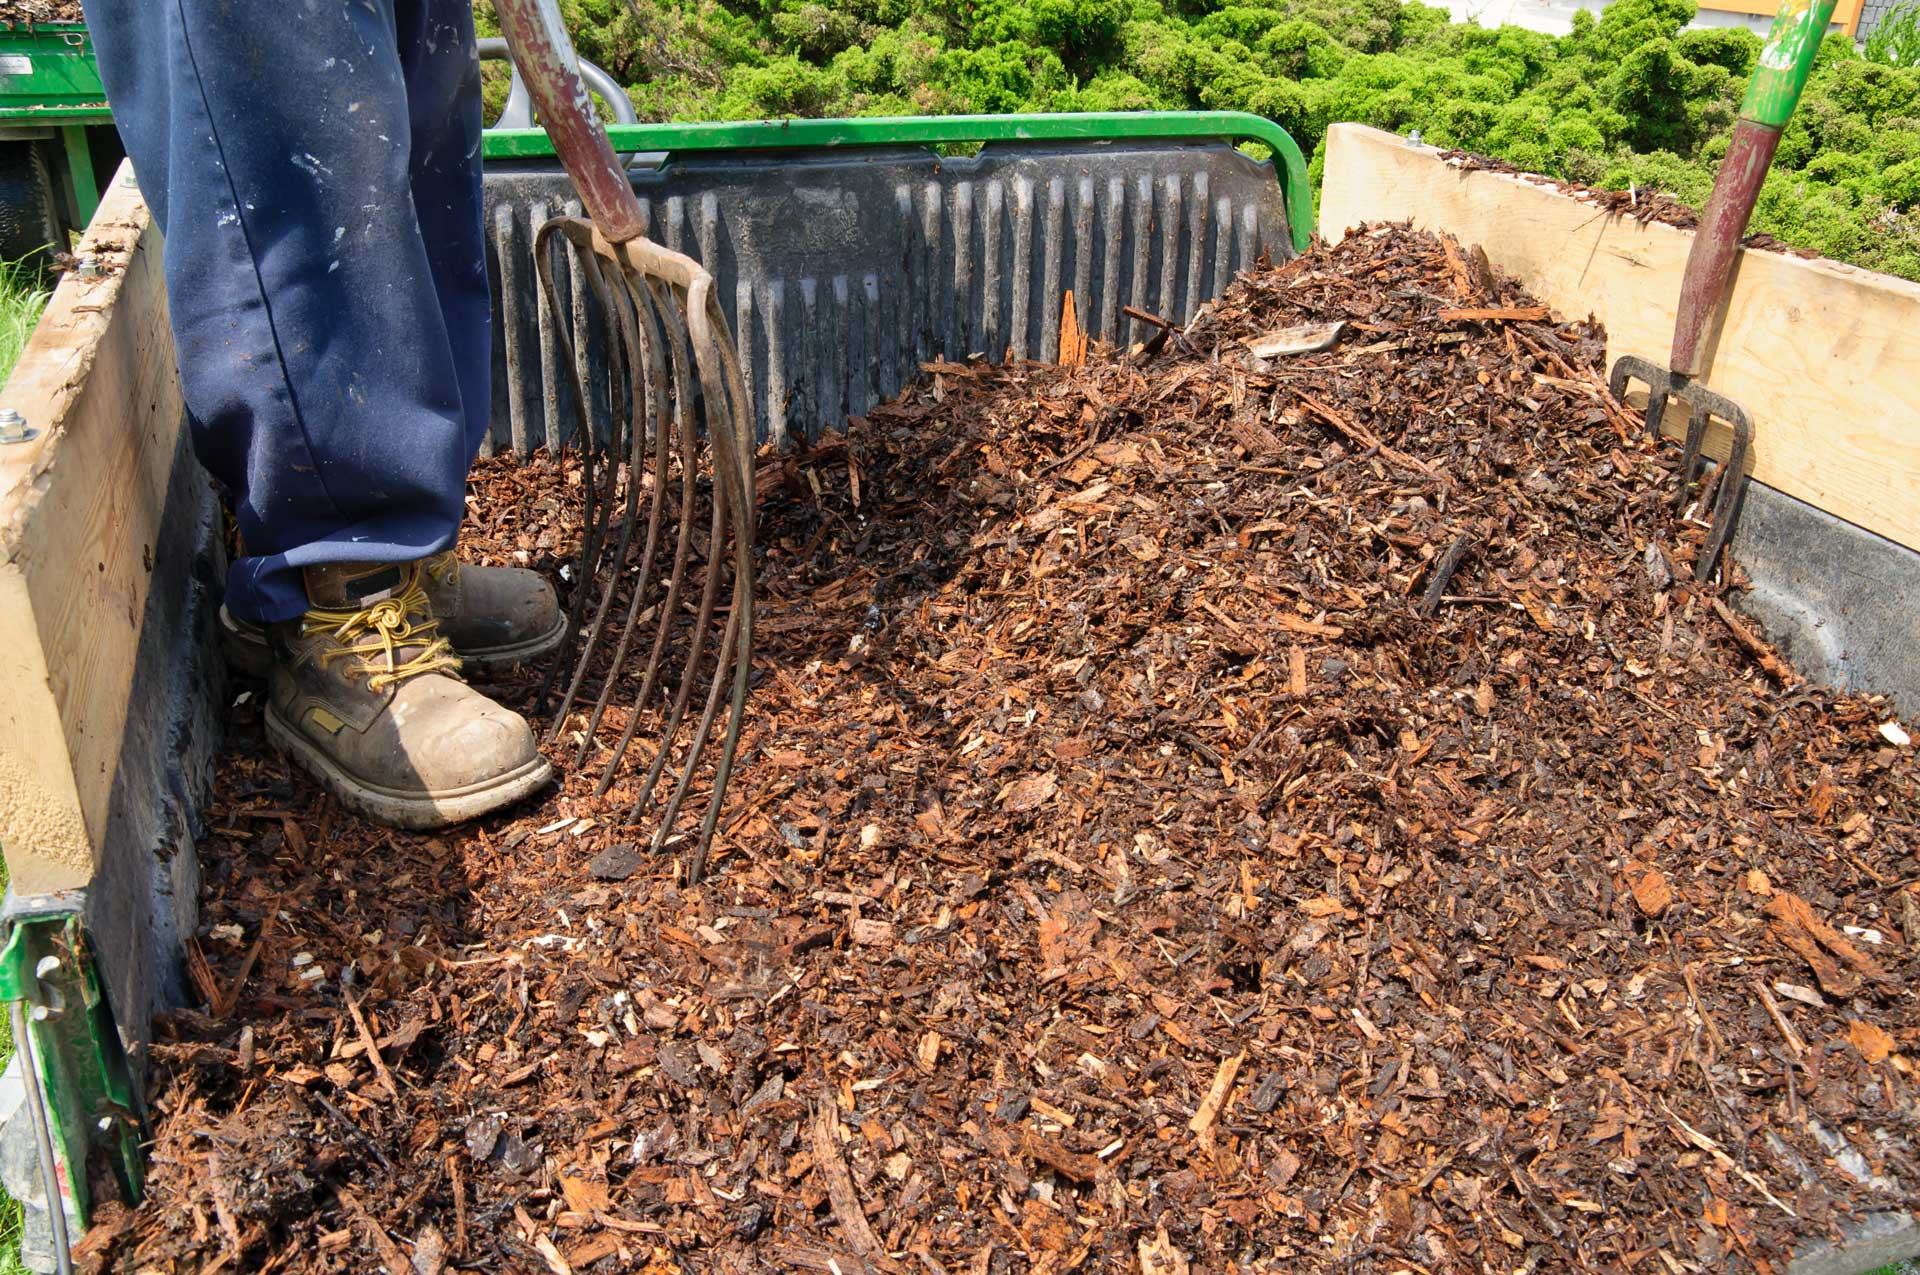 Why Mulch Matters - Image bulk load of mulch